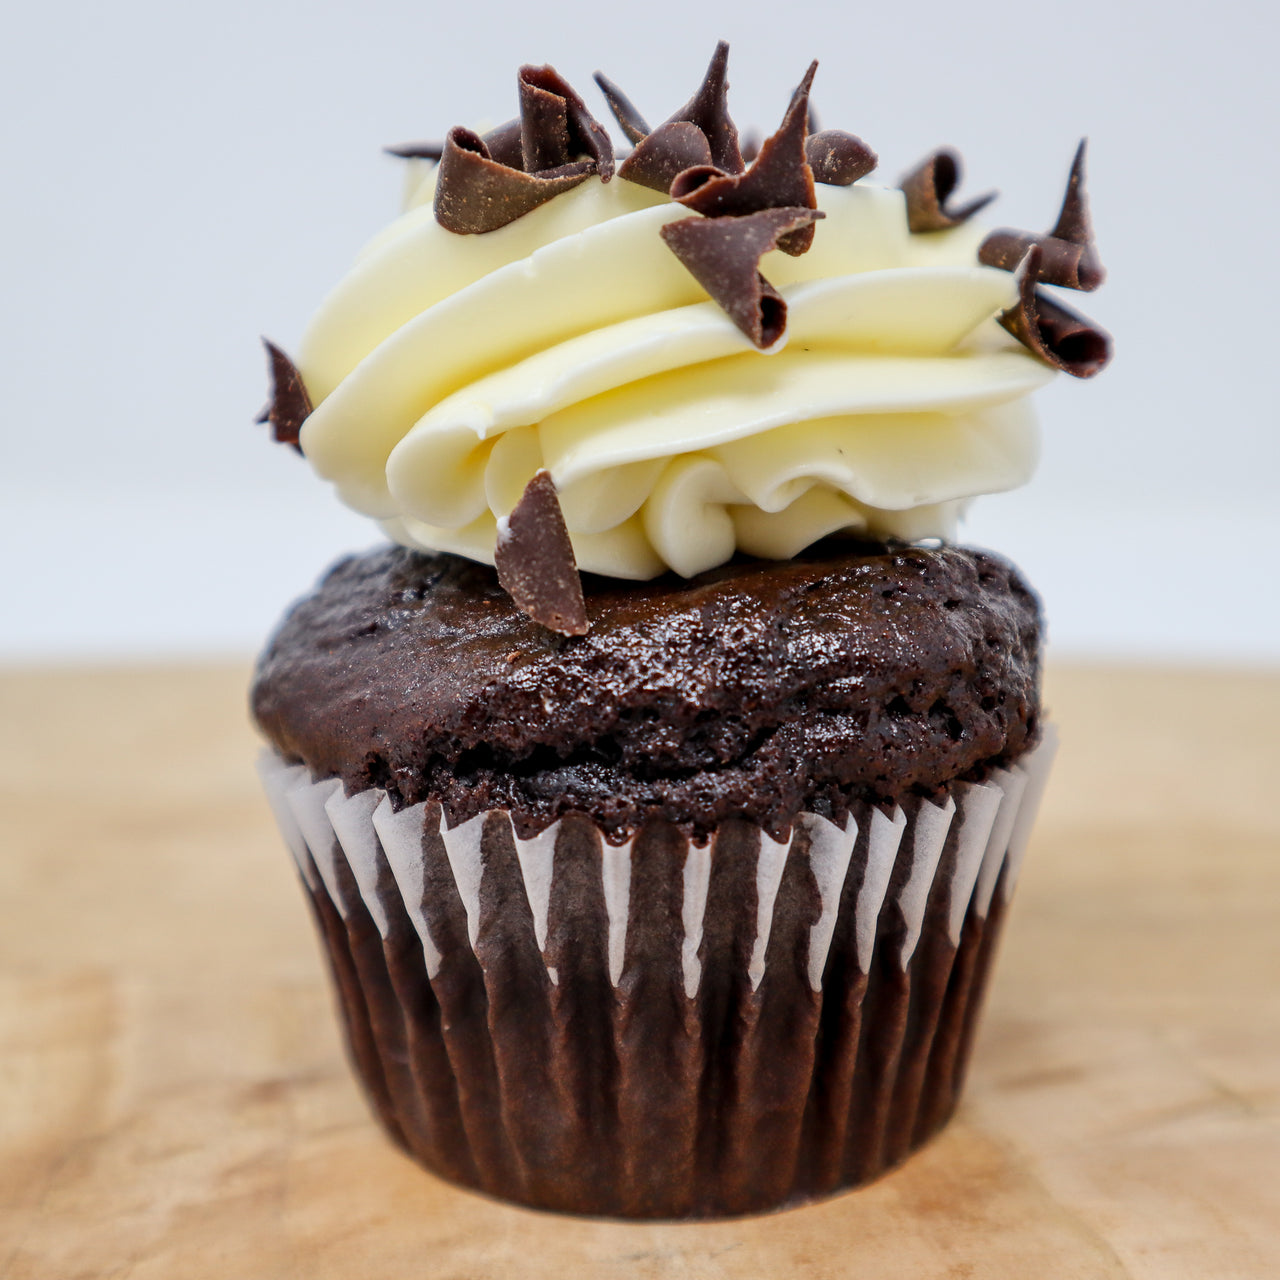 gluten-free chocolate cupcake with vanilla buttercream